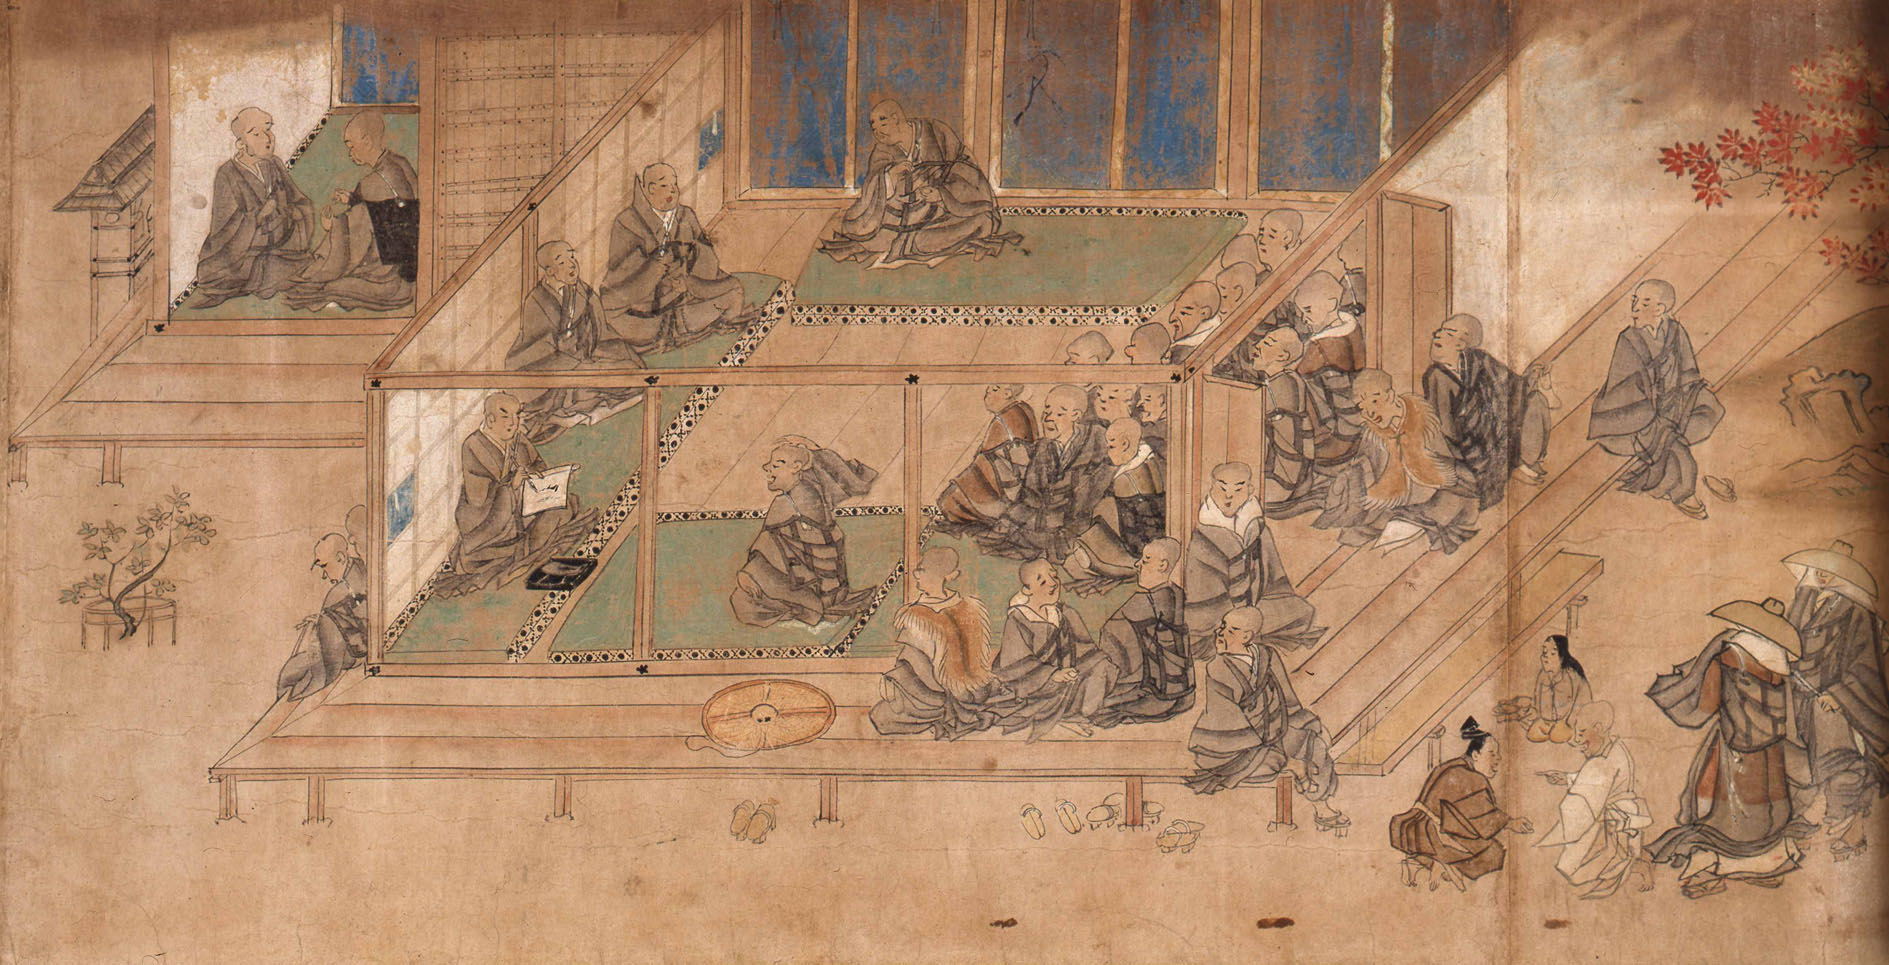 'Illustrated Biography of Shinran' (Zenshin Shonin, Rin'a version), an Important Cultural Property from the Kamakura Period,13th century. | NISHI HONGWANJI (HONGWANJI-HA), KYOTO